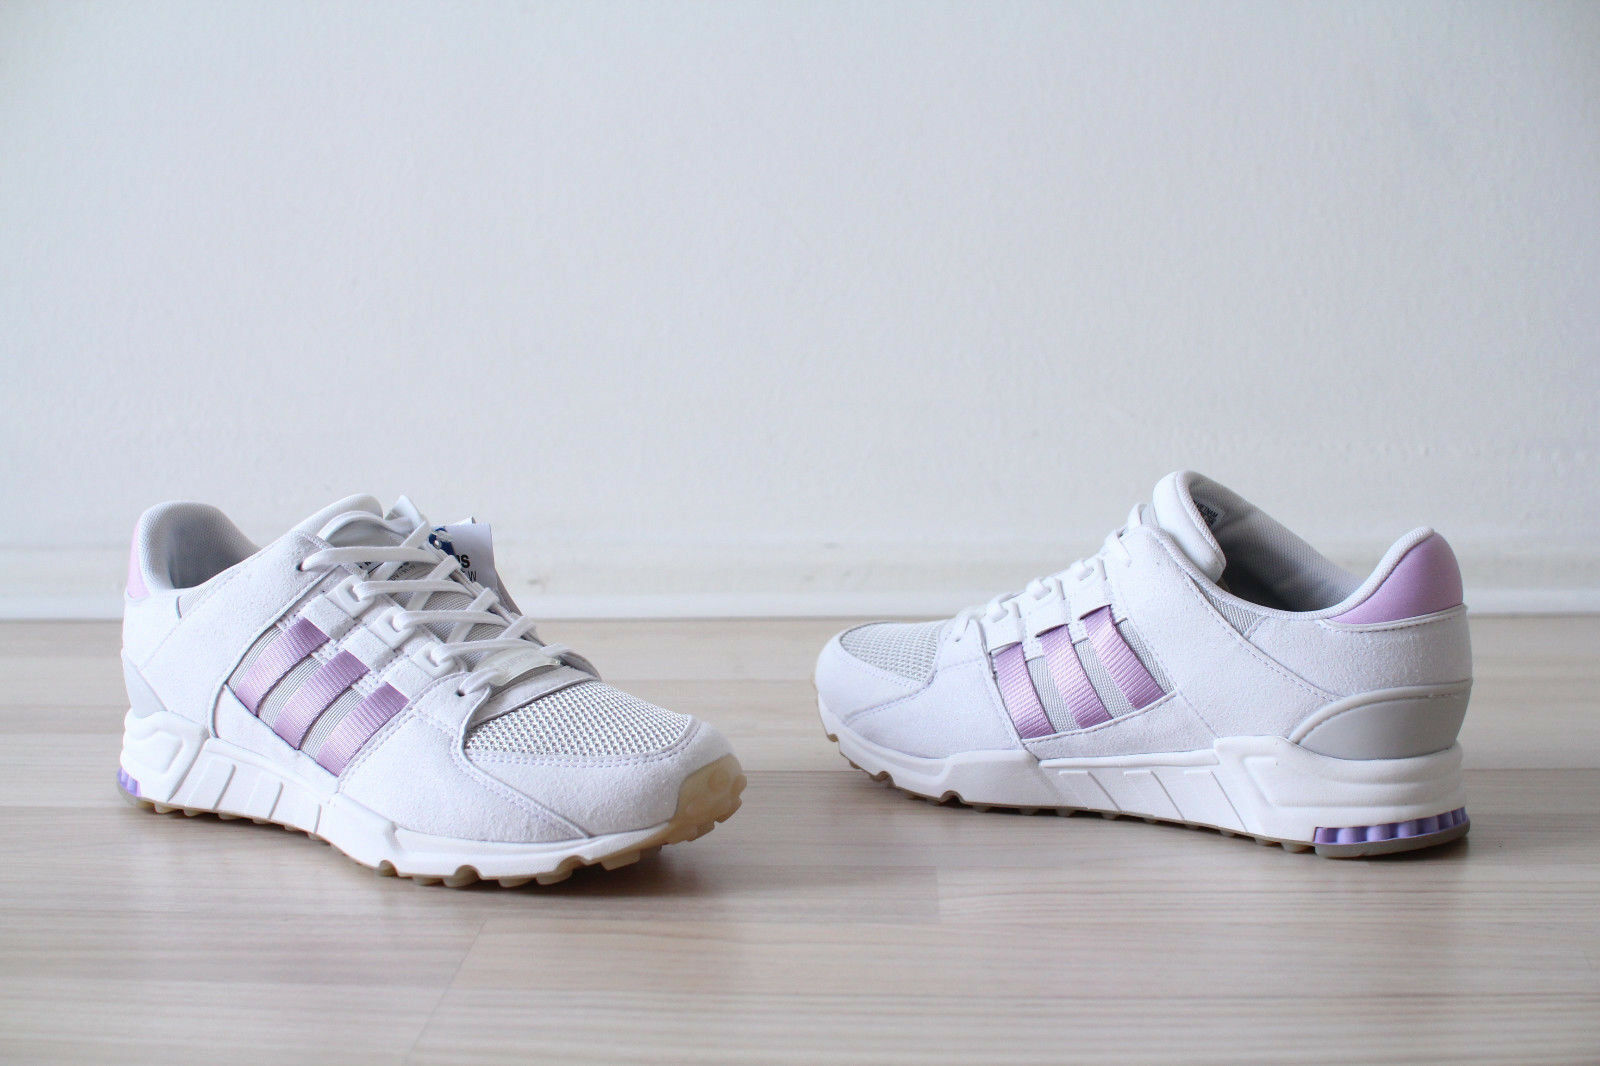 Adidas EQT Support RF W Bianco Crema Mis. Mis. Mis. 36,37,38,39,40,41,42 NUOVO Equipment by9105 d30da7